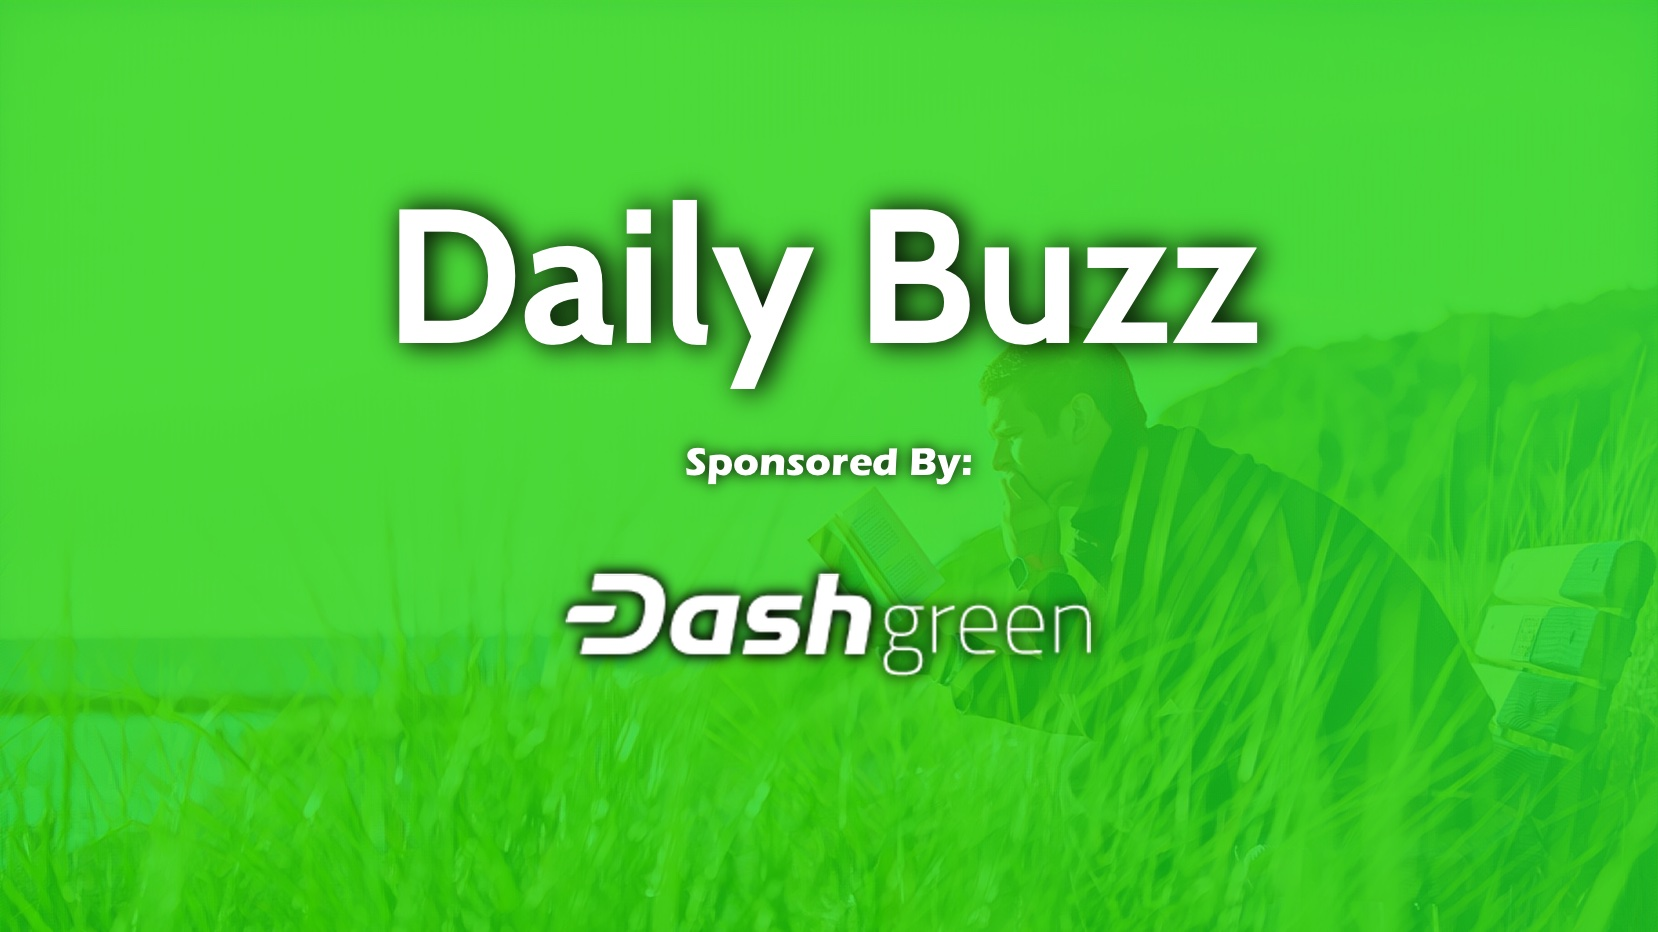 DailyBuzz Tuesday 1 January 2019